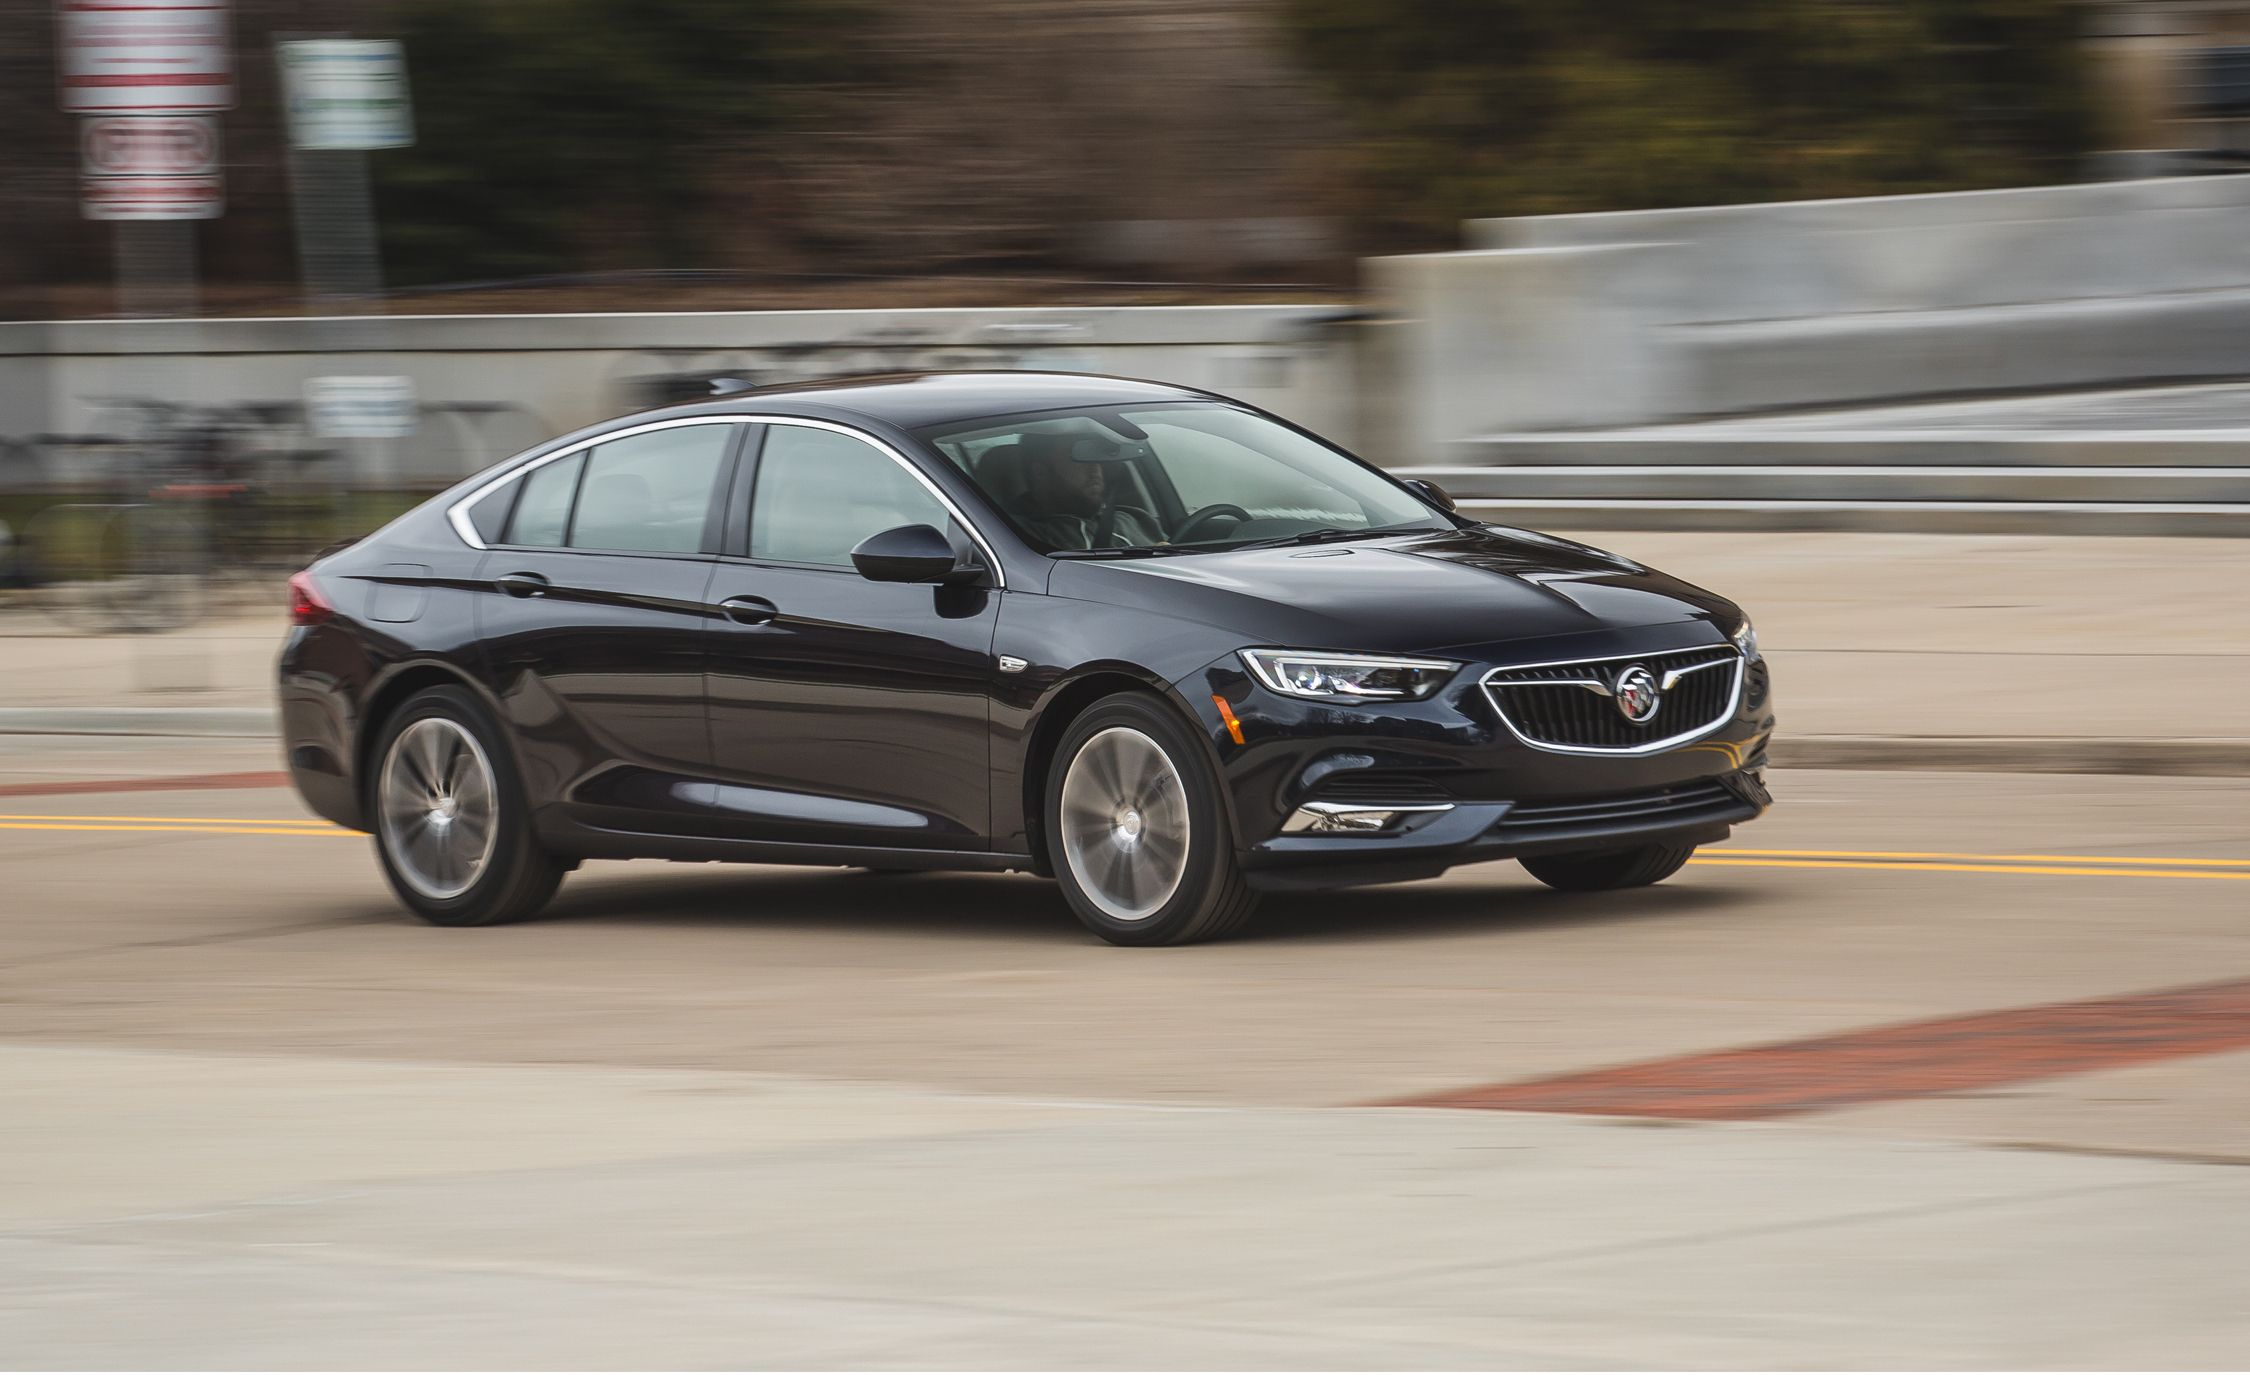 2018 Buick Regal Sportback Fwd Test | Review | Car And Driver 2021 Buick Regal Sportback Specs, Used, 0-60